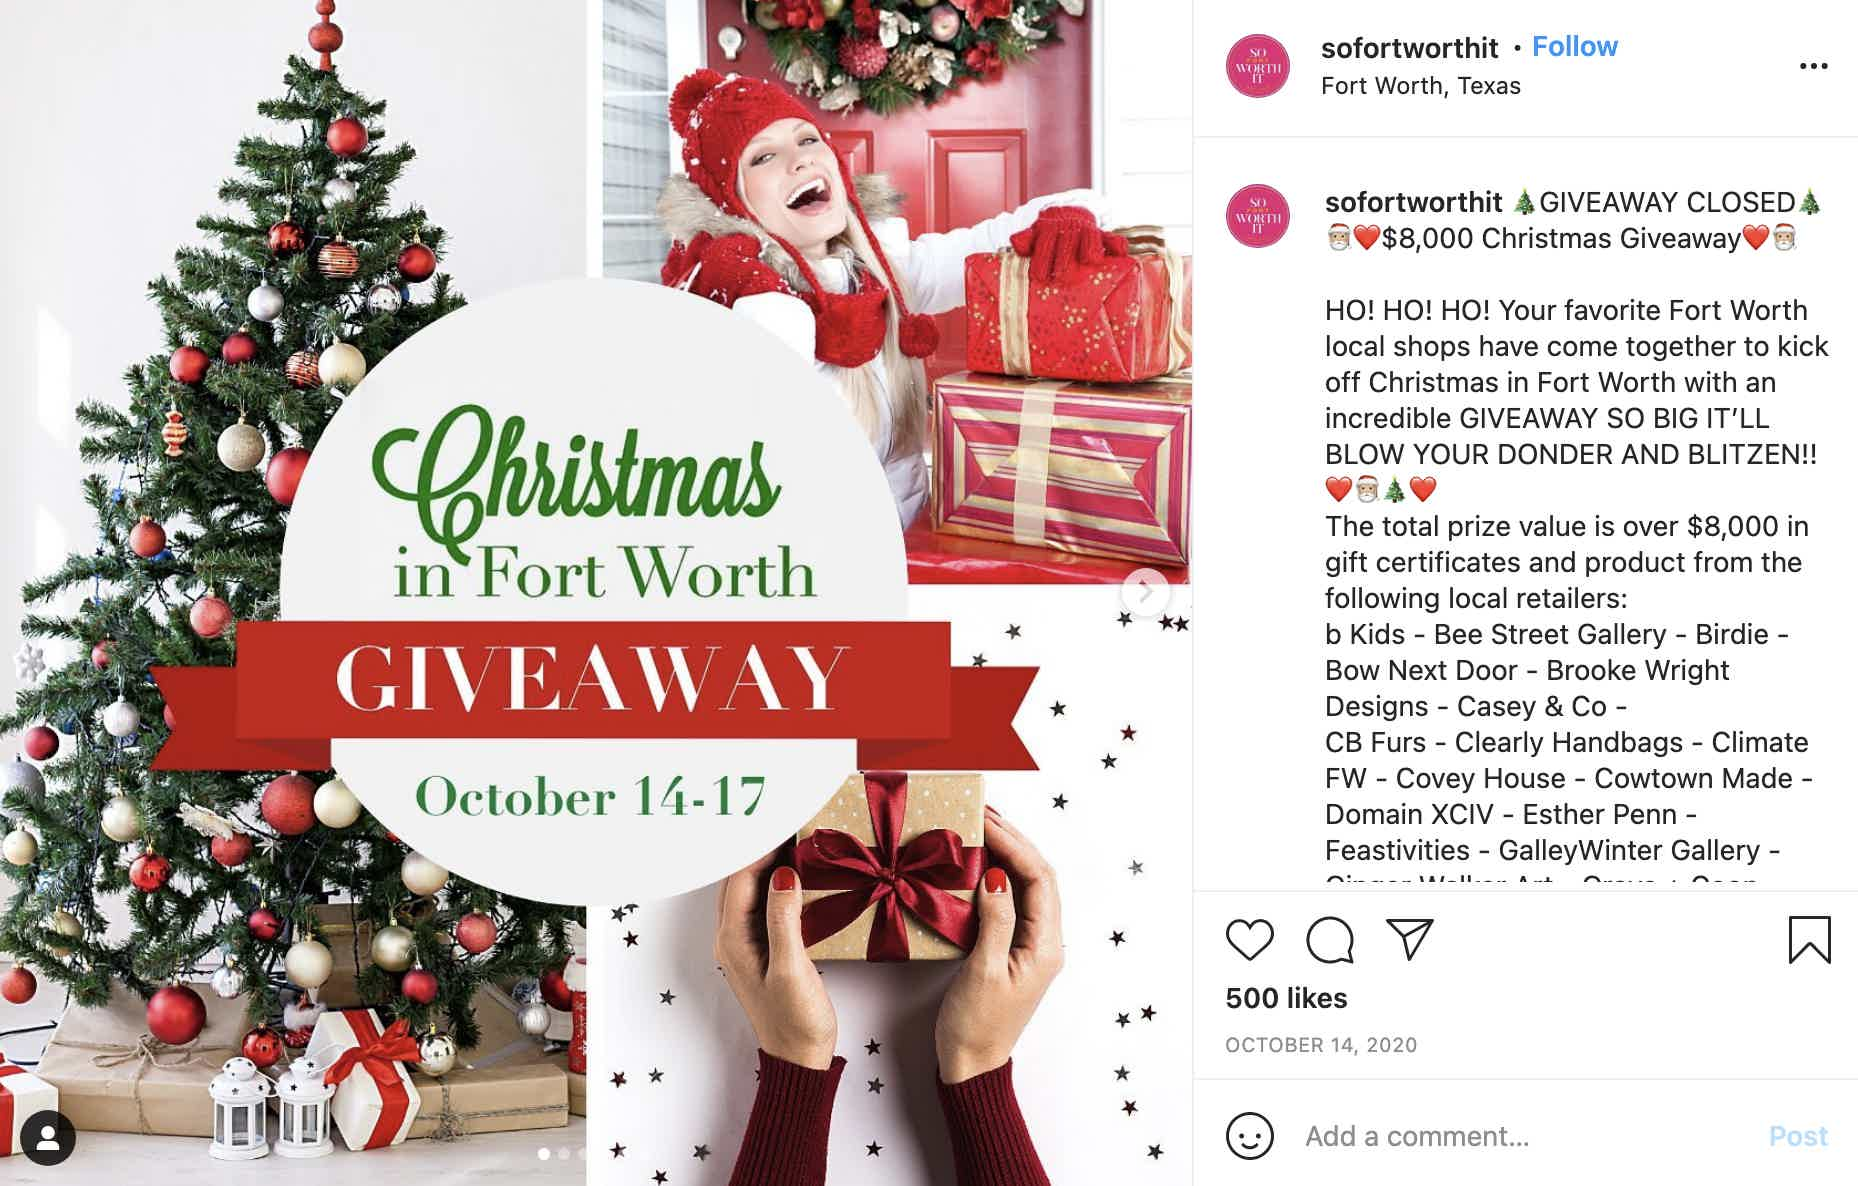 So Fort Worth It Instagram Giveaway